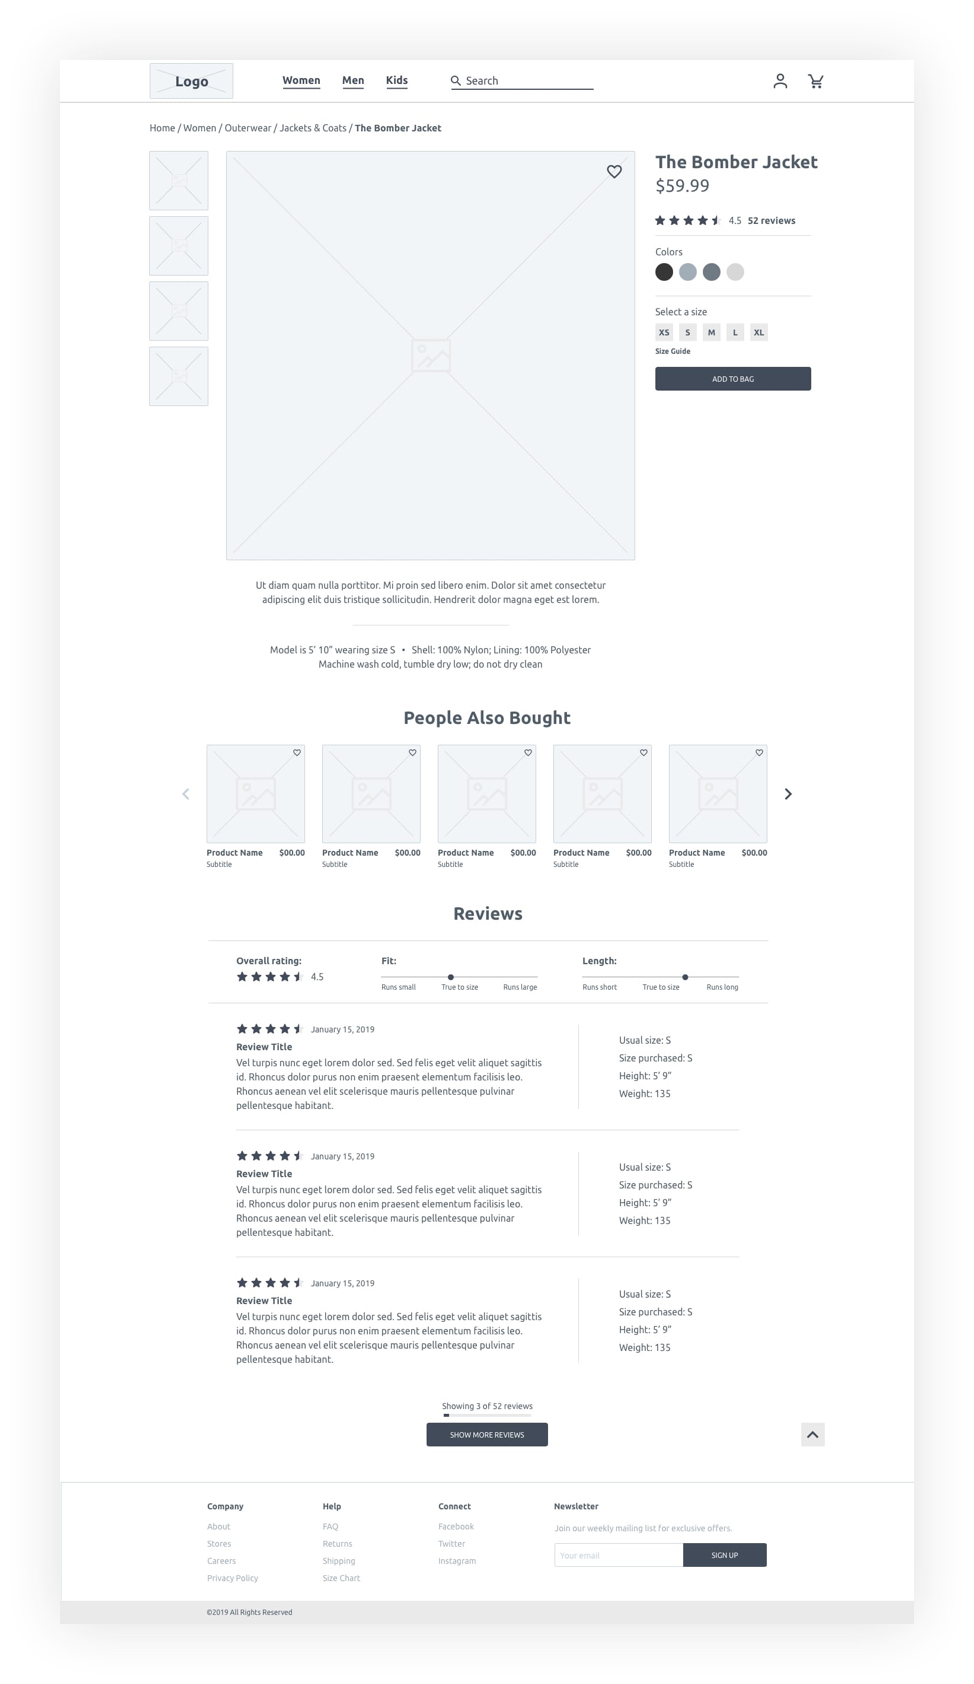 wireframe of product page